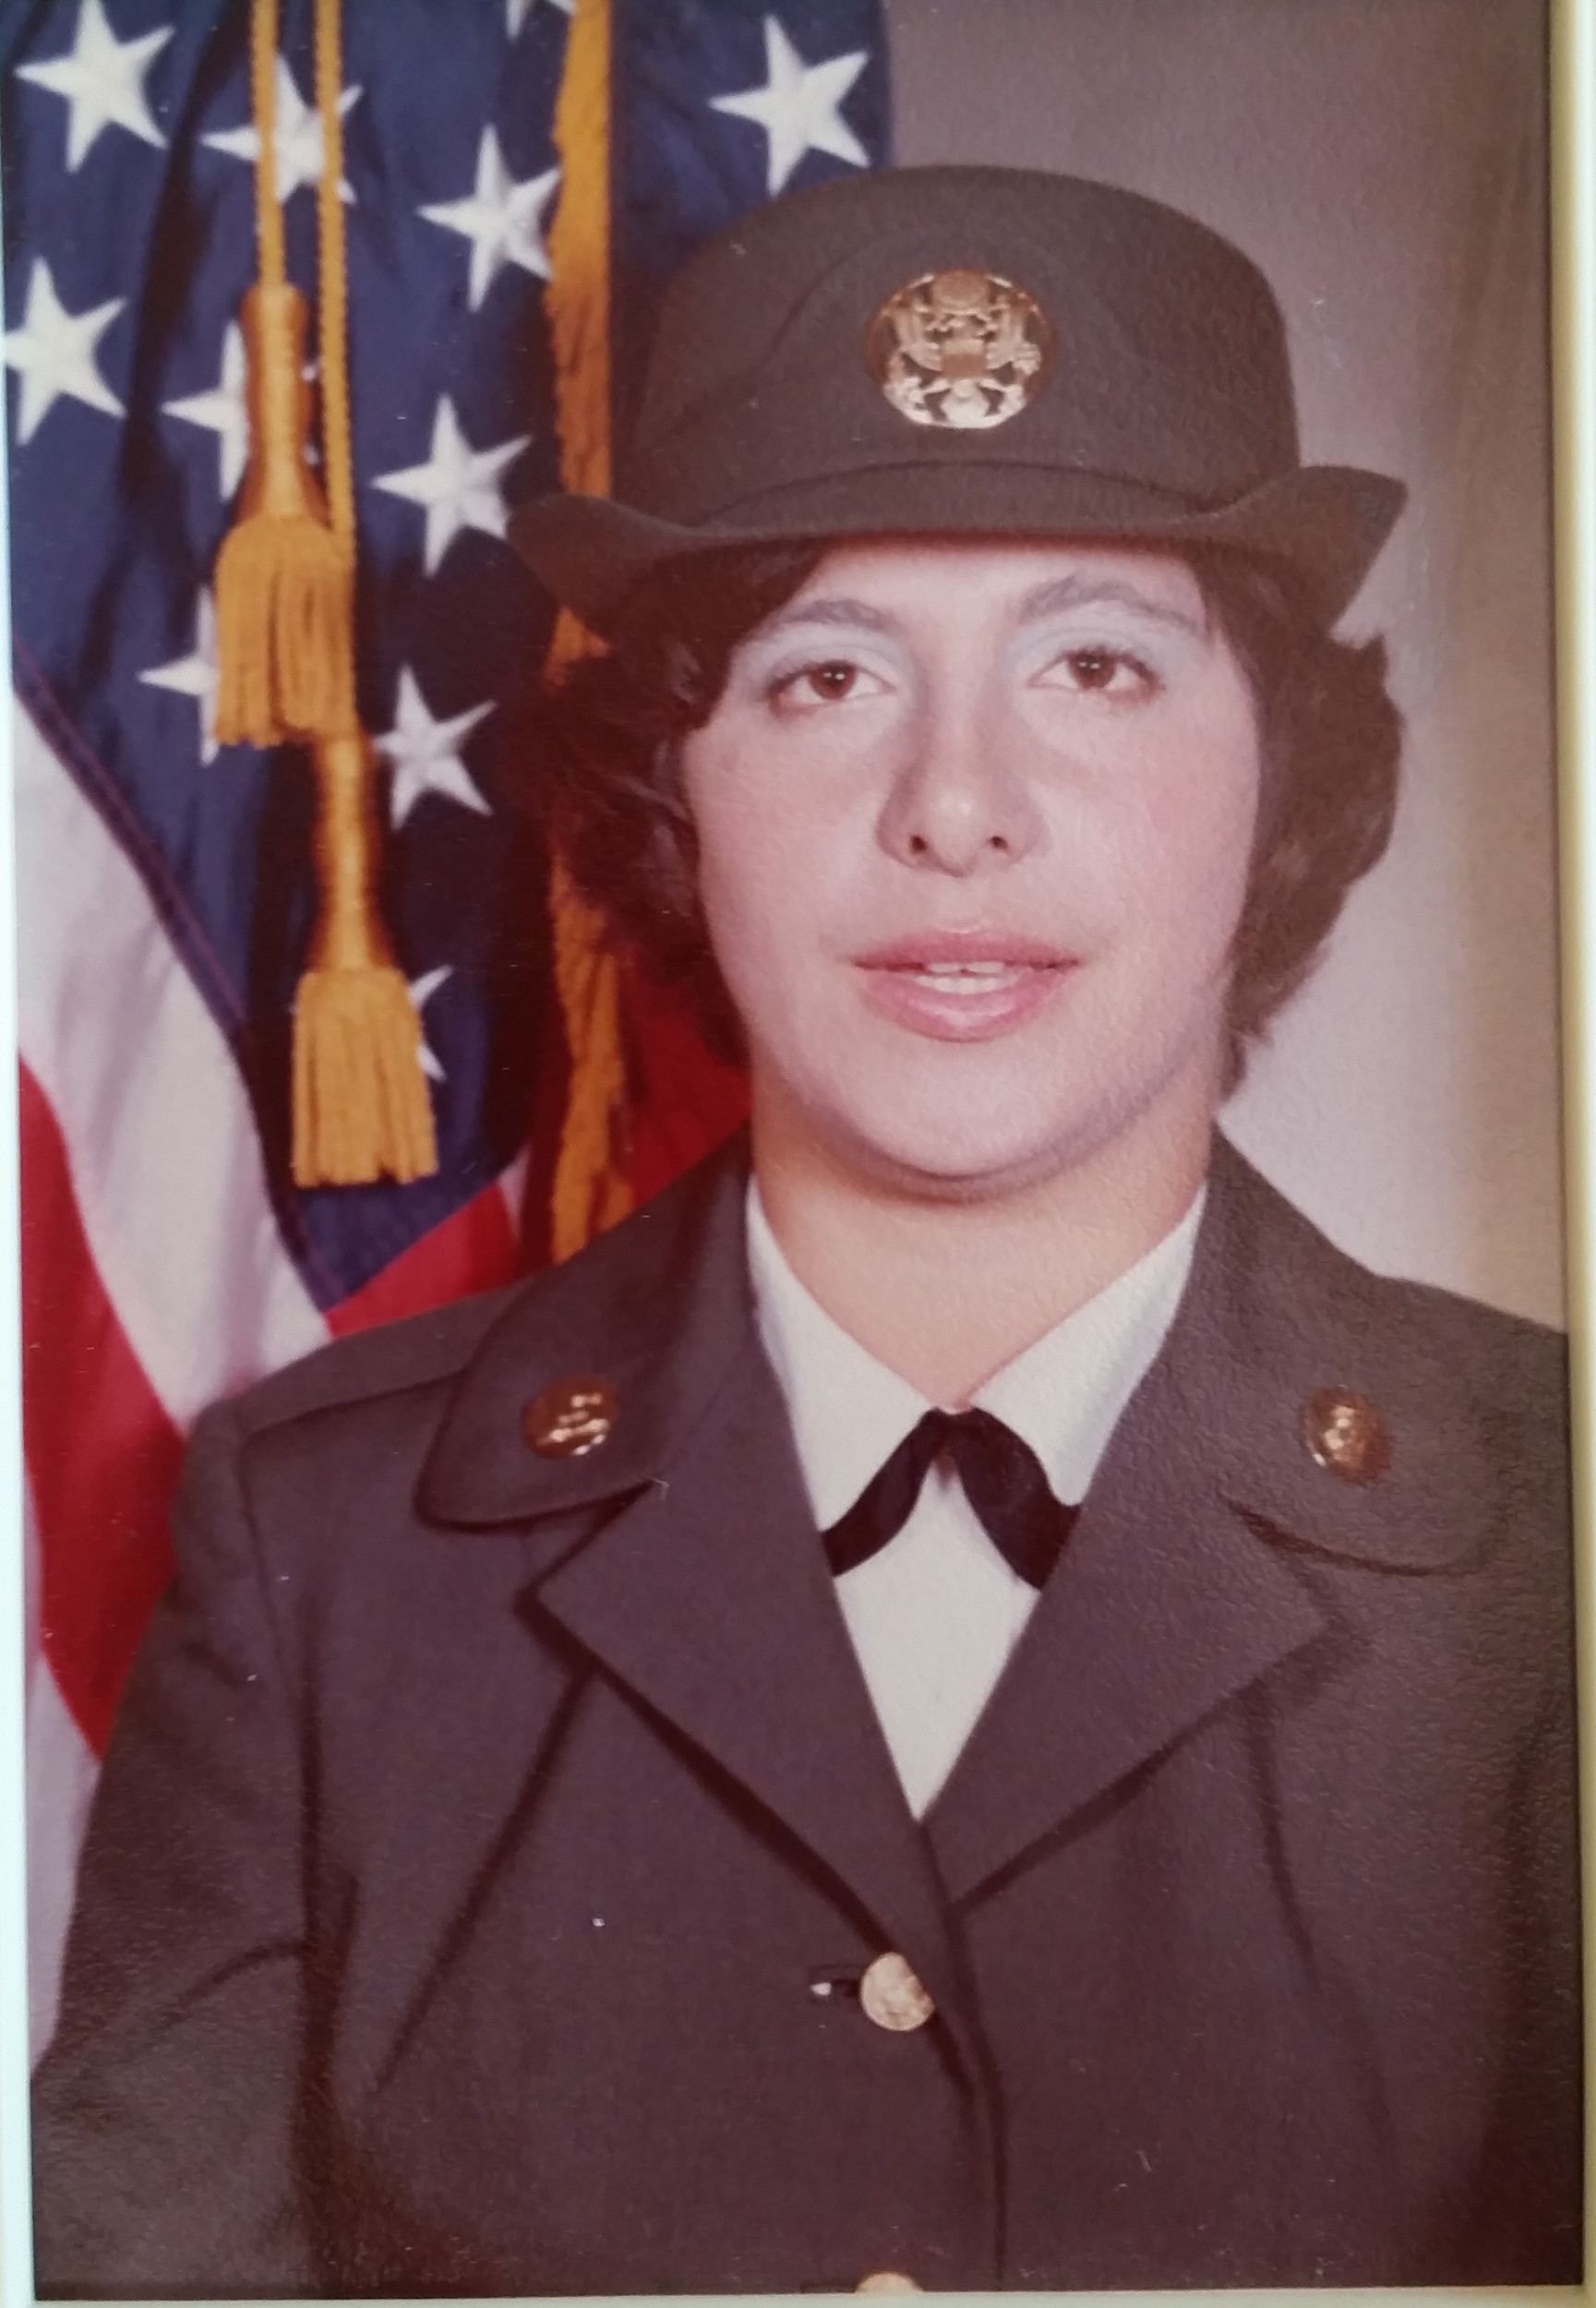 Stephanie rossetti's army photo from Oct. 16, 1974.